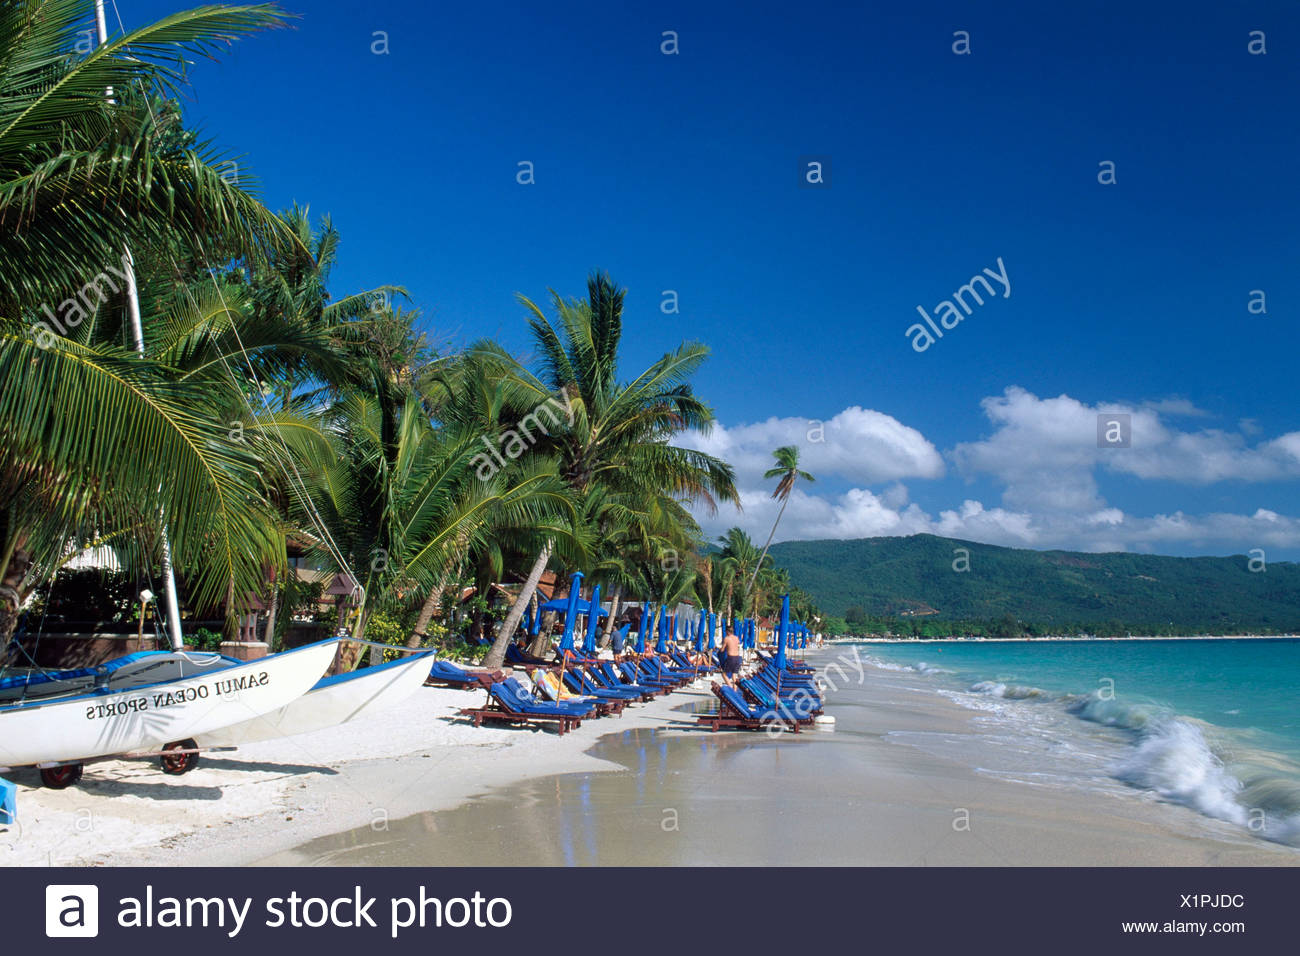 Deck chairs on Chaweng Beach, Ko Samui, Thailand, Southeast Asia - Stock Image